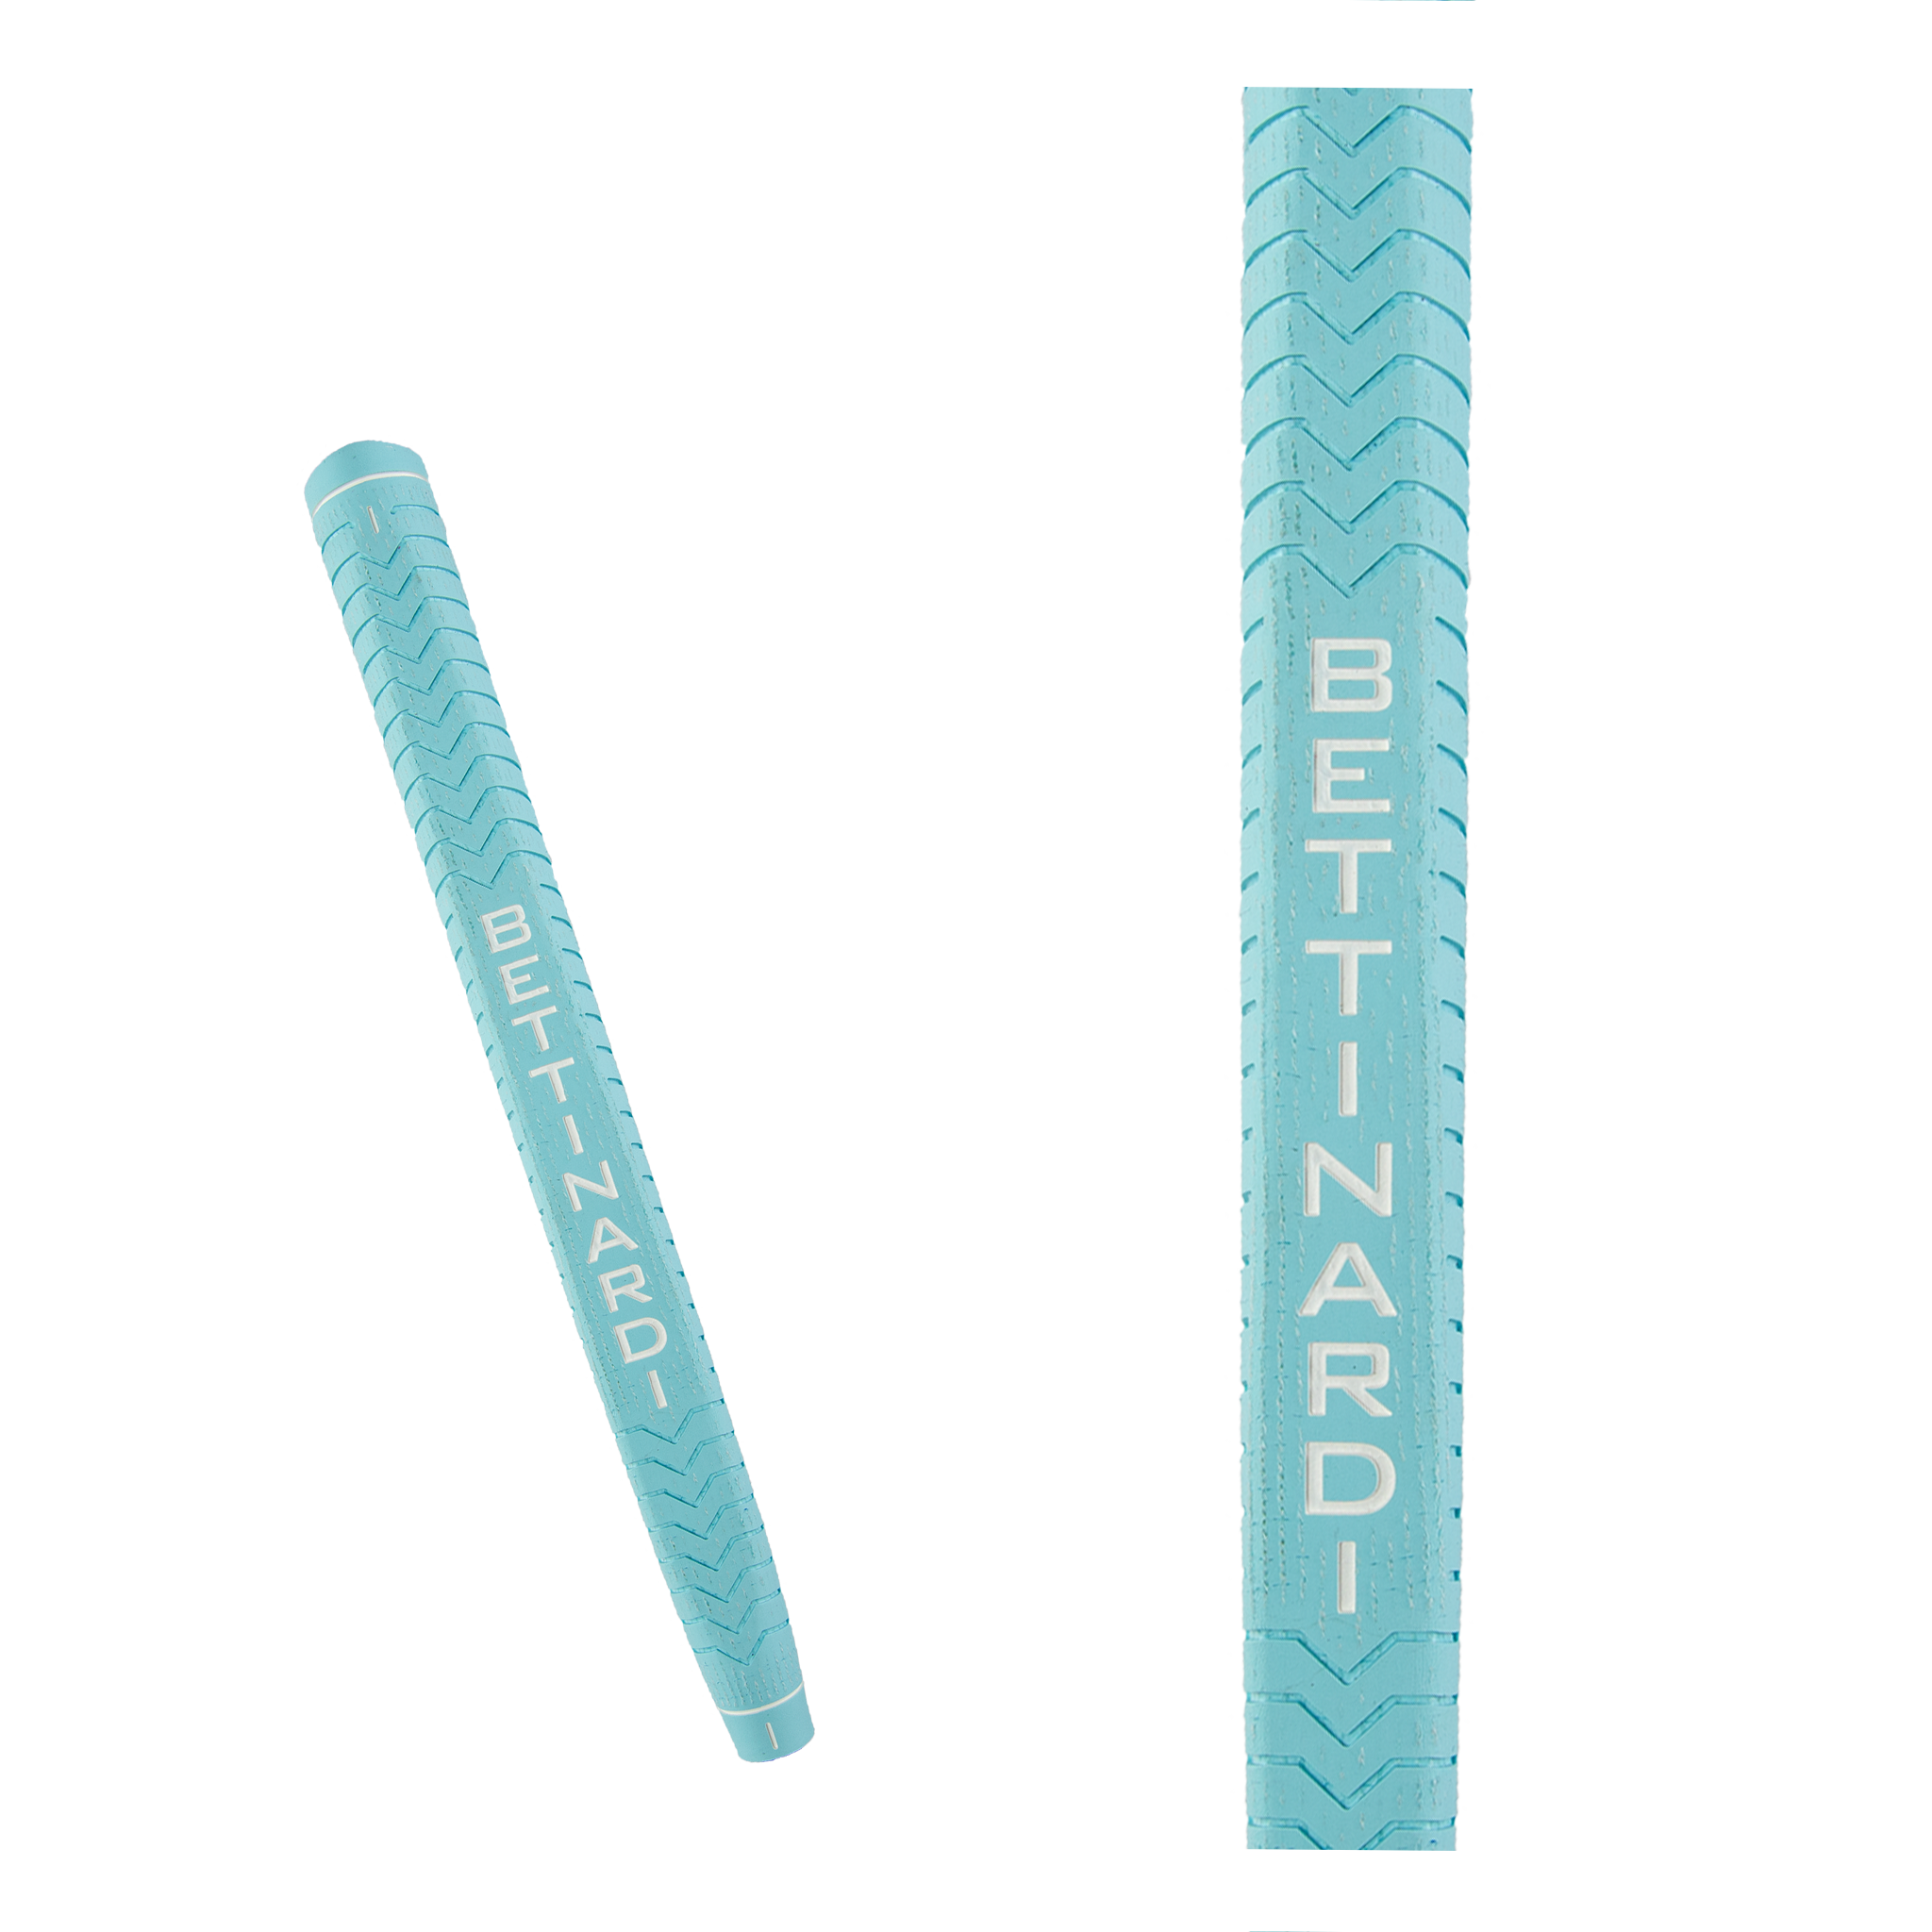 Bettinardi Queen B Series (Standard)